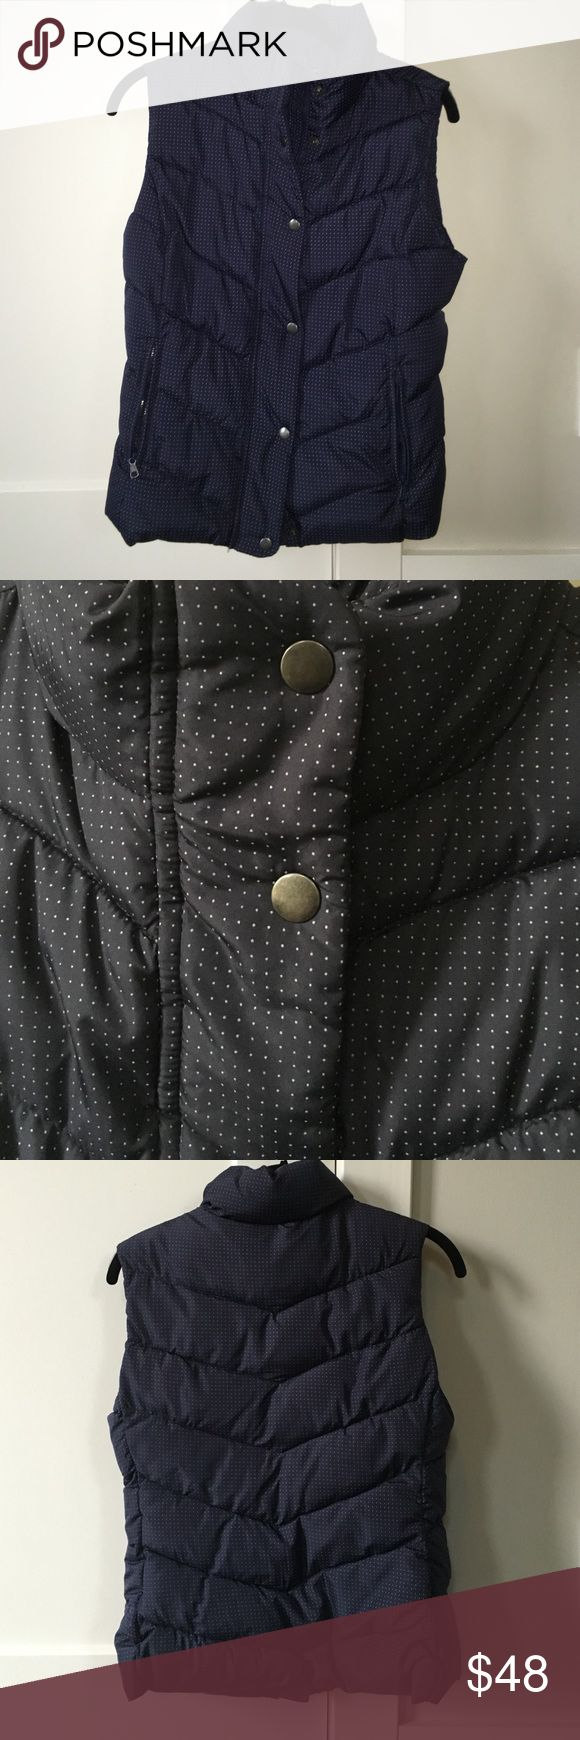 Gap polka dot vest Navy blue puffer best with tiny grey polka dots. Only worn a couple of times! GAP Jackets & Coats Vests